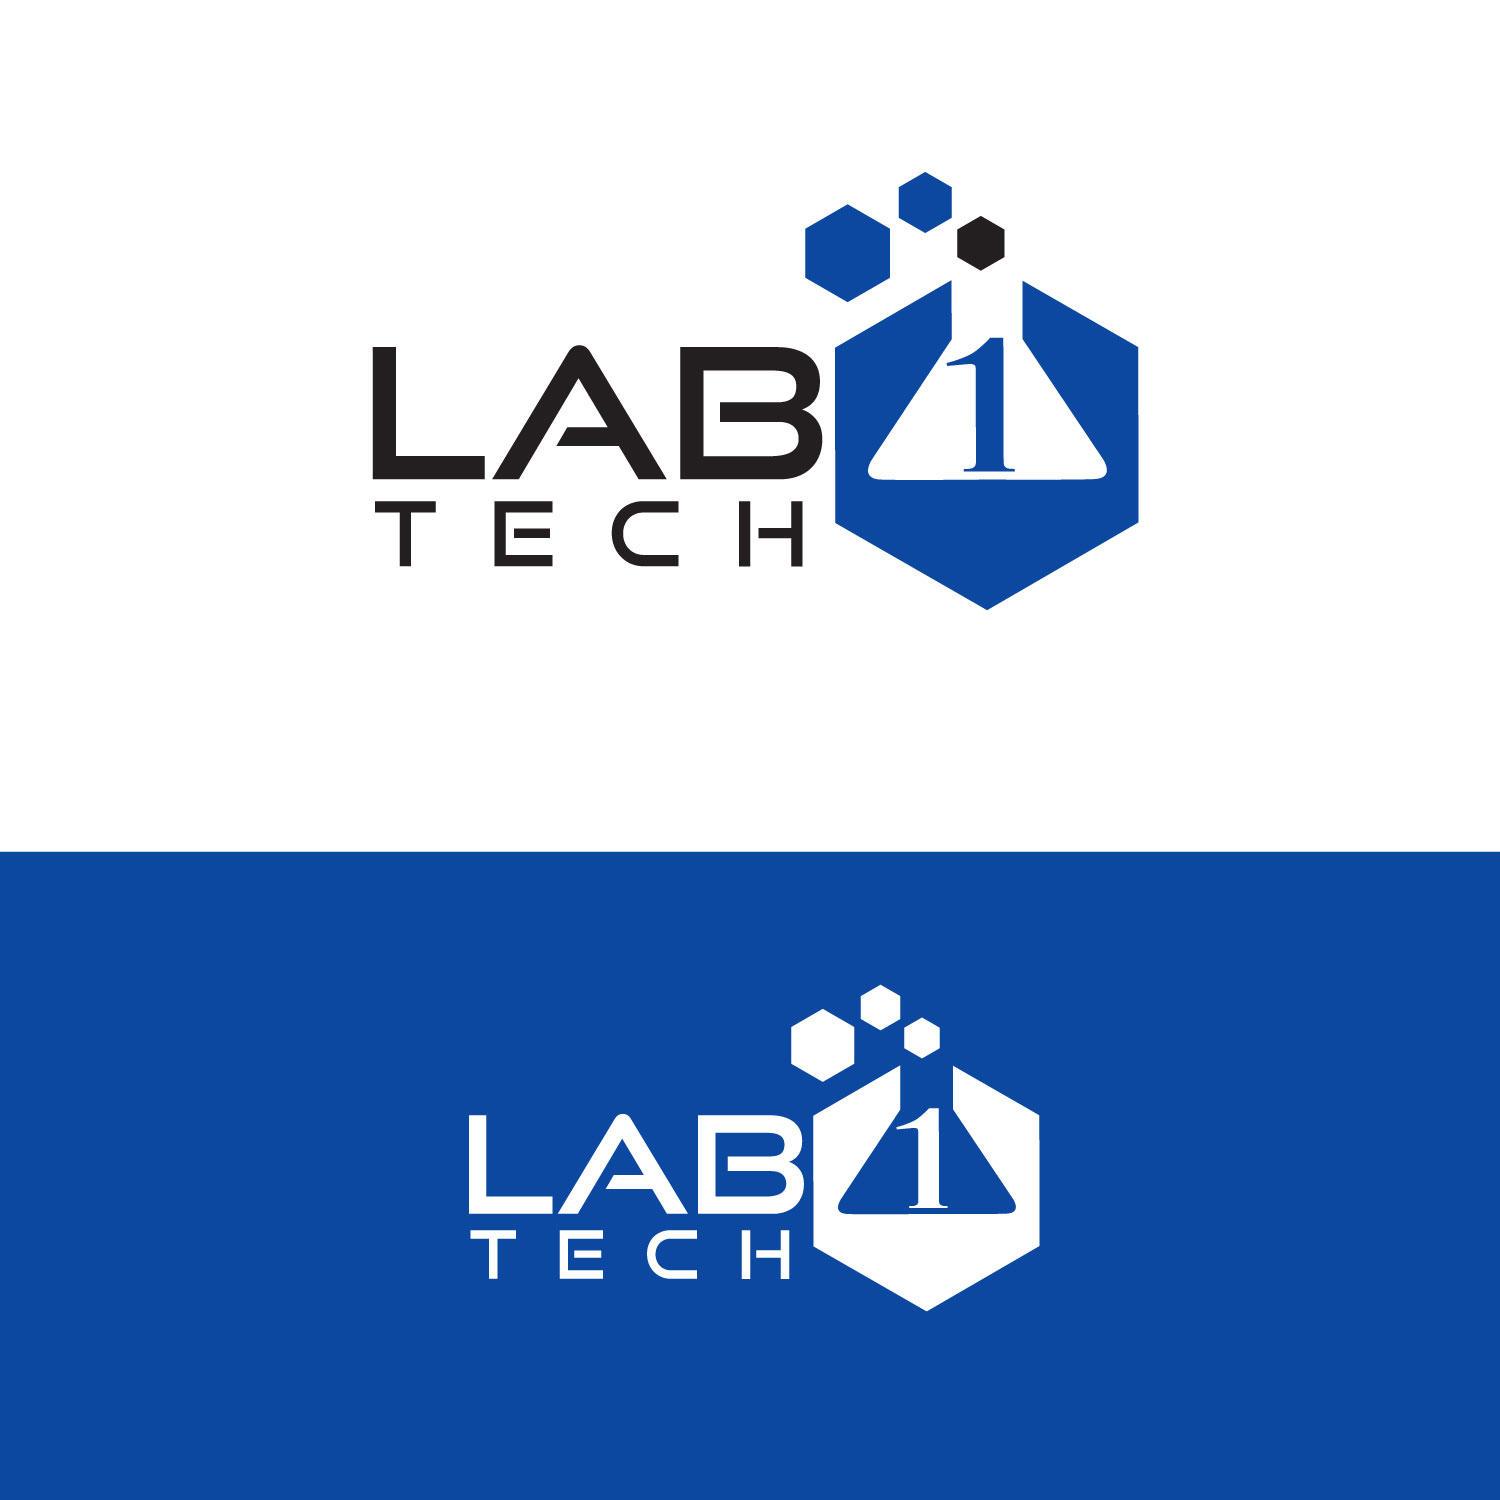 Serious Modern Technical Service Logo Design For Lab1 Tech By Concepts Design 18875866